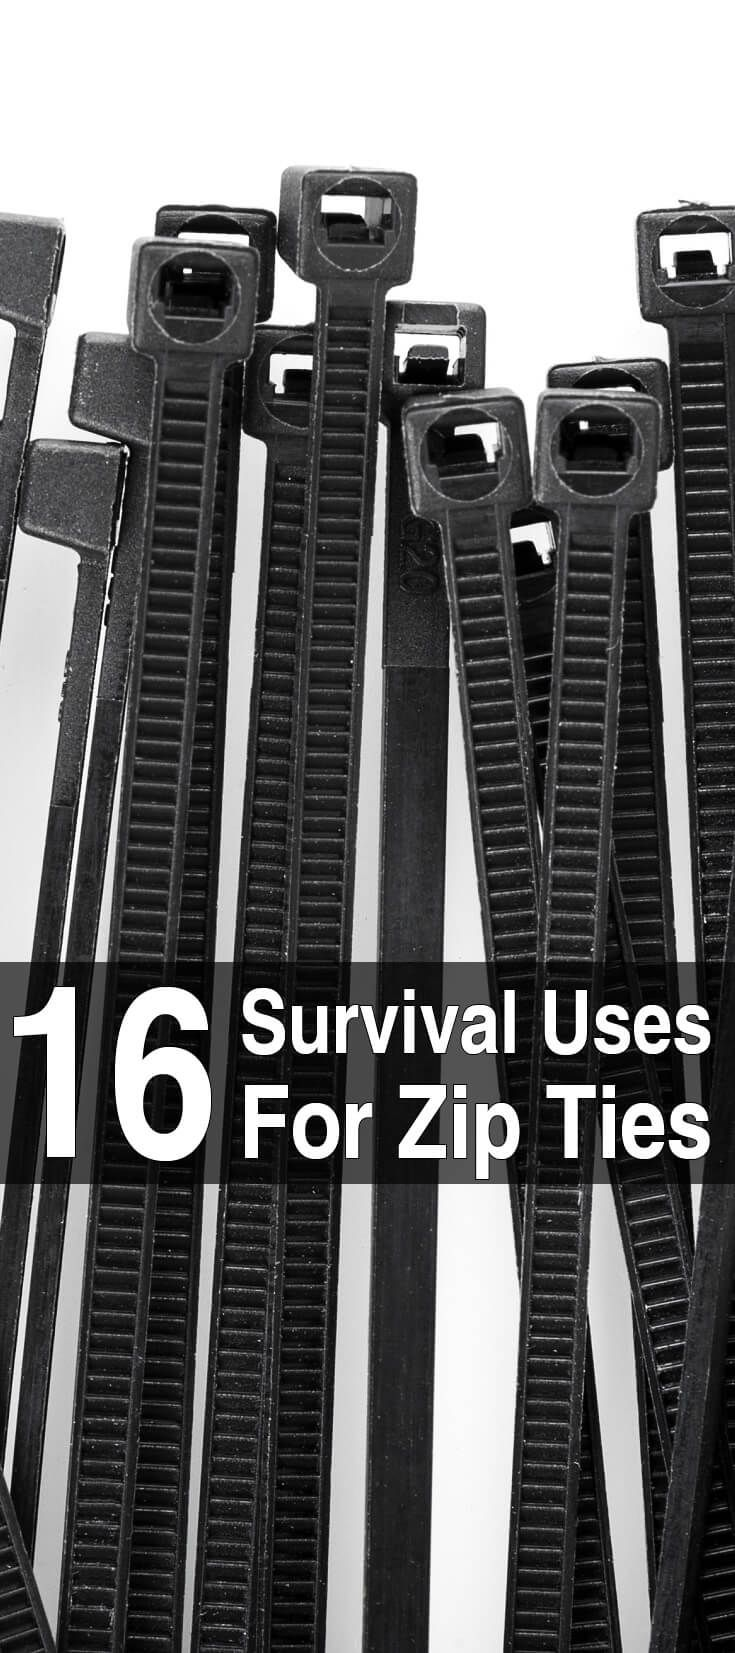 16 Survival Uses For Zip Ties - Modellen